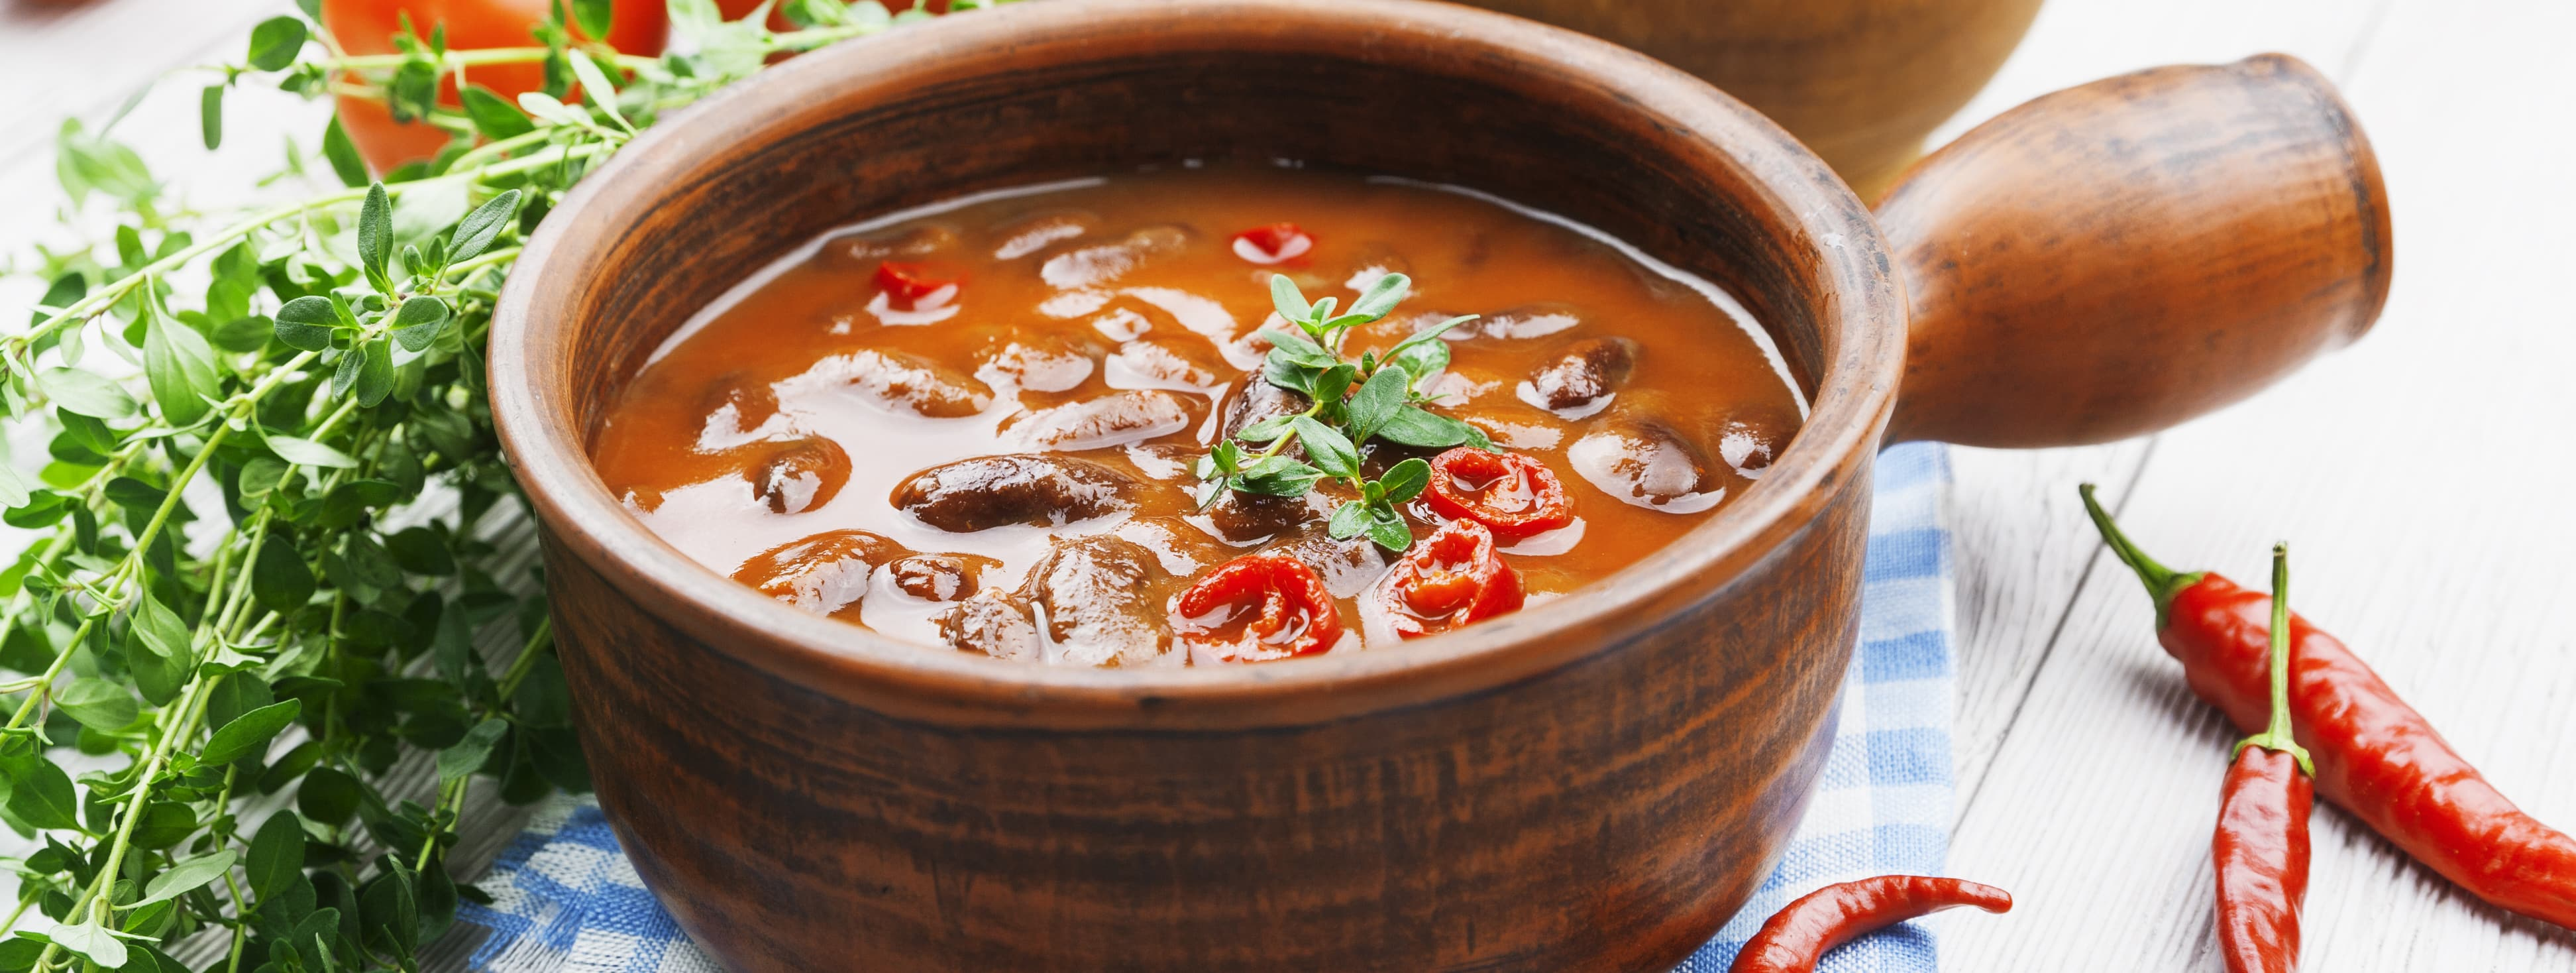 There is nothing better than a delicious bowl of chili, and it's perfect for your next party or get-together. This adapted recipe is the best healthy chili recipe ever made.